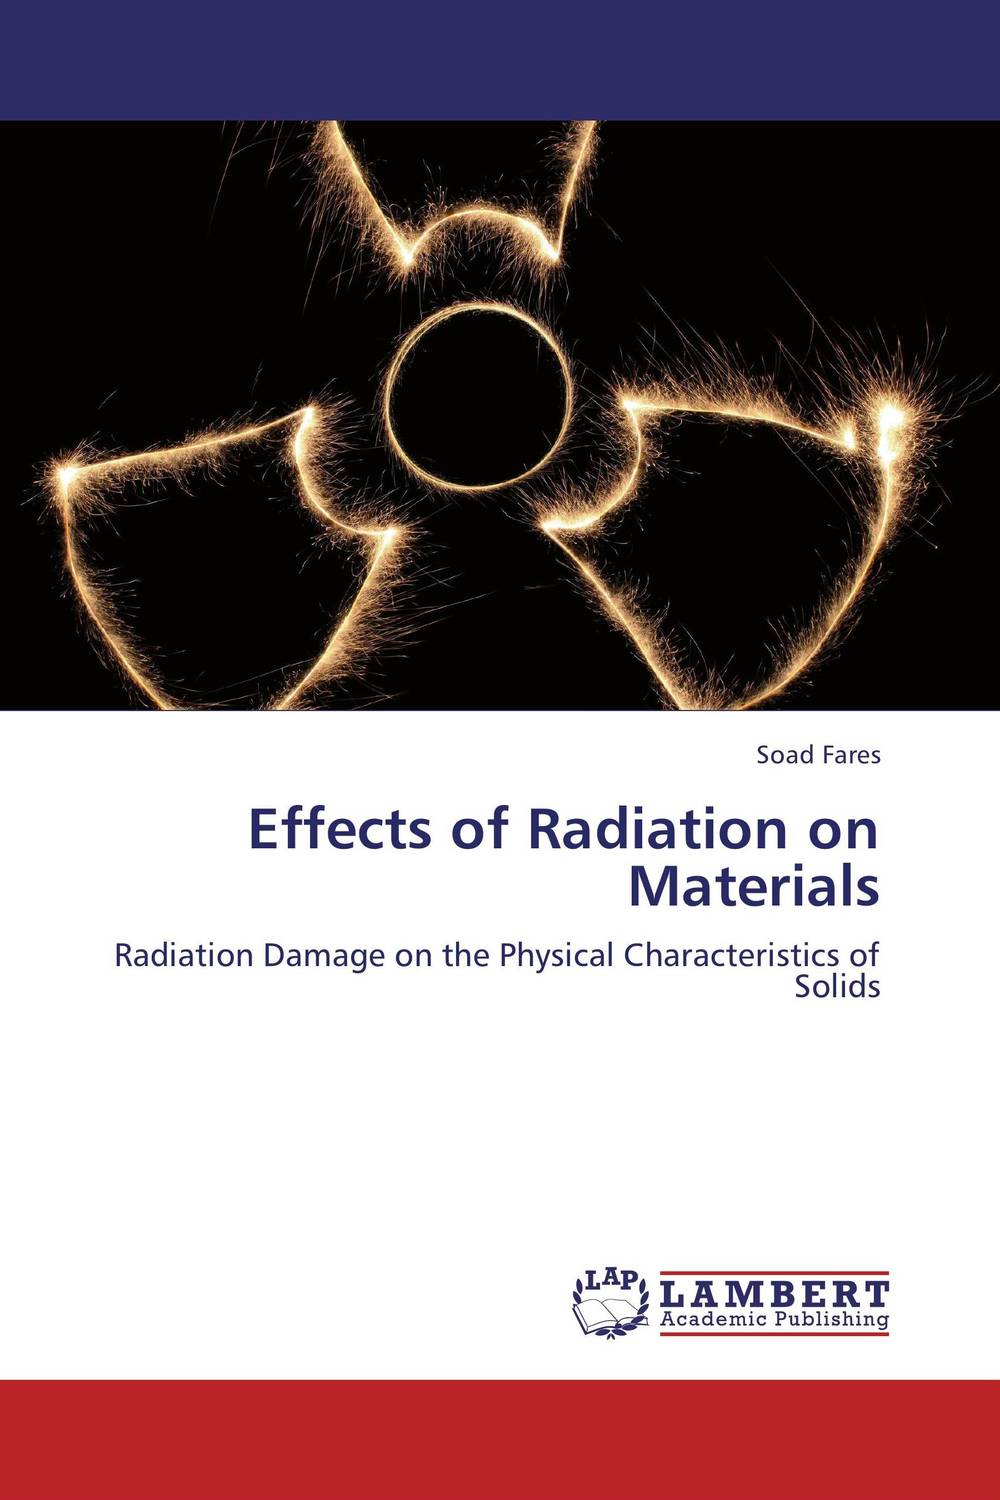 Effects of Radiation on Materials study of point defects in solids and thin films